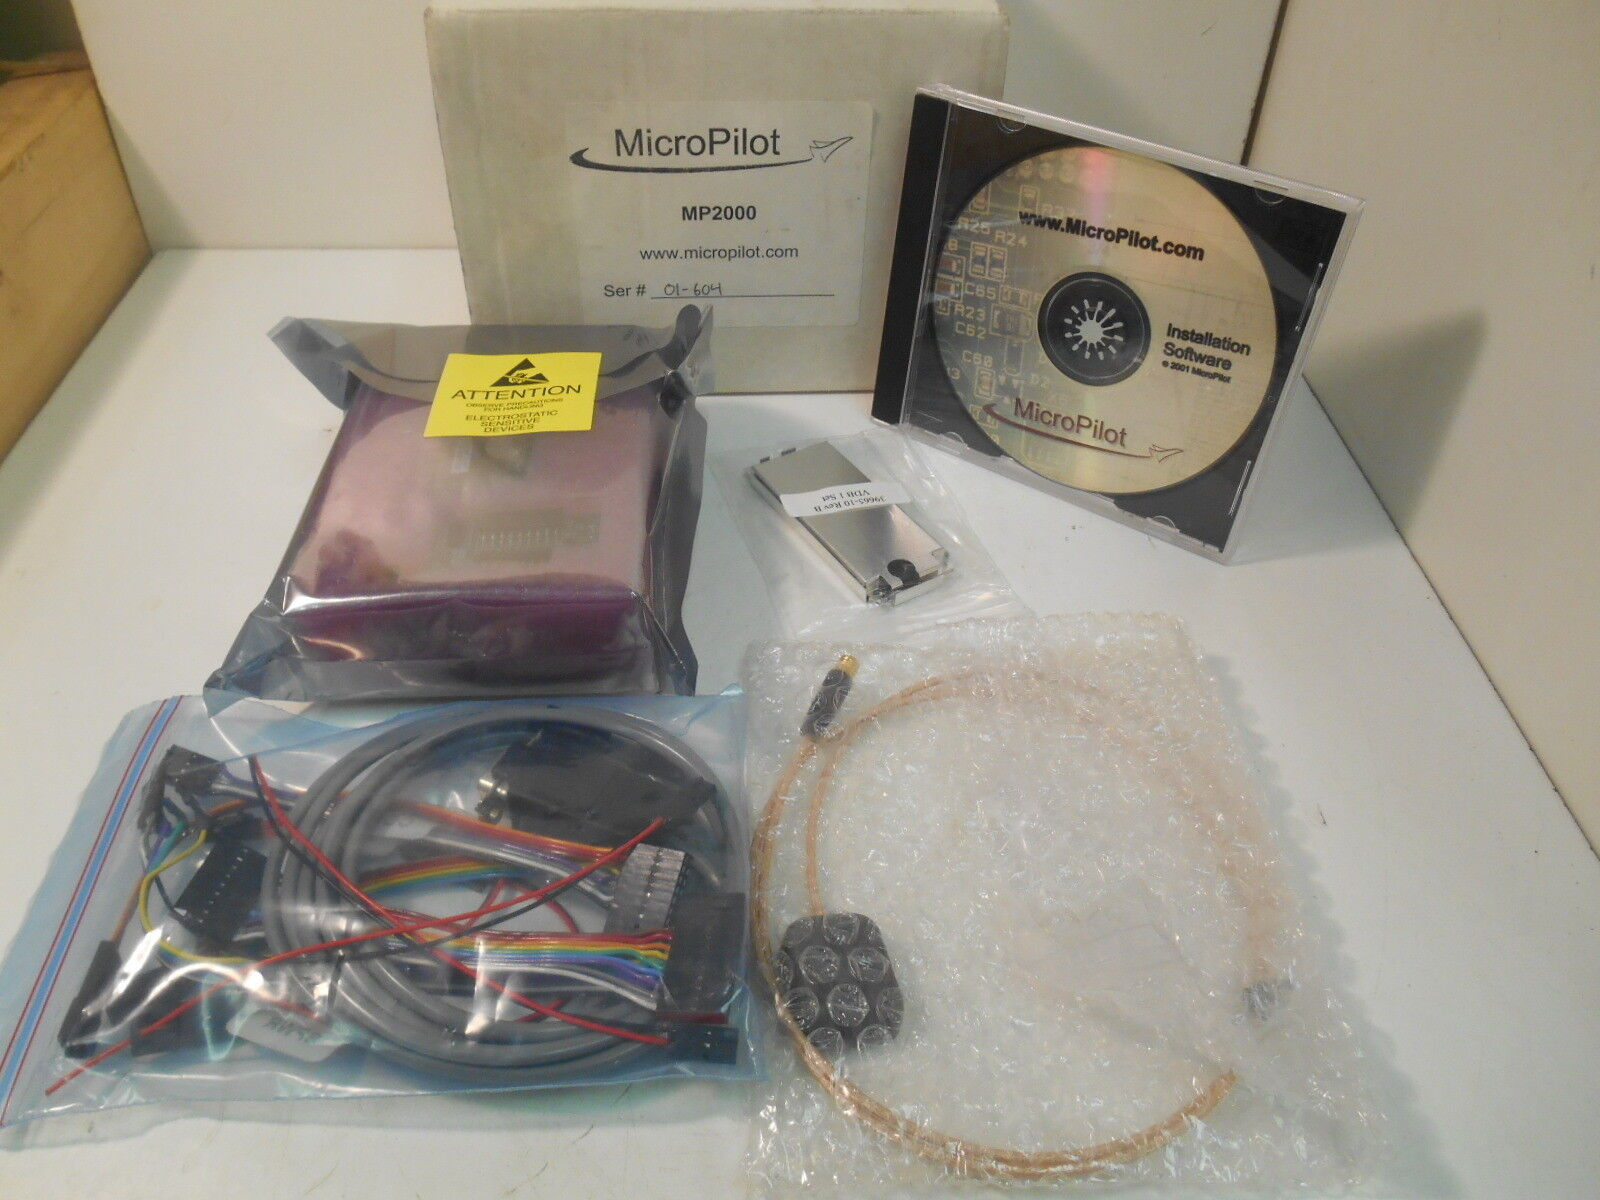 NIB MicroPilot MP2000 Autopilot w  Hardware & Software